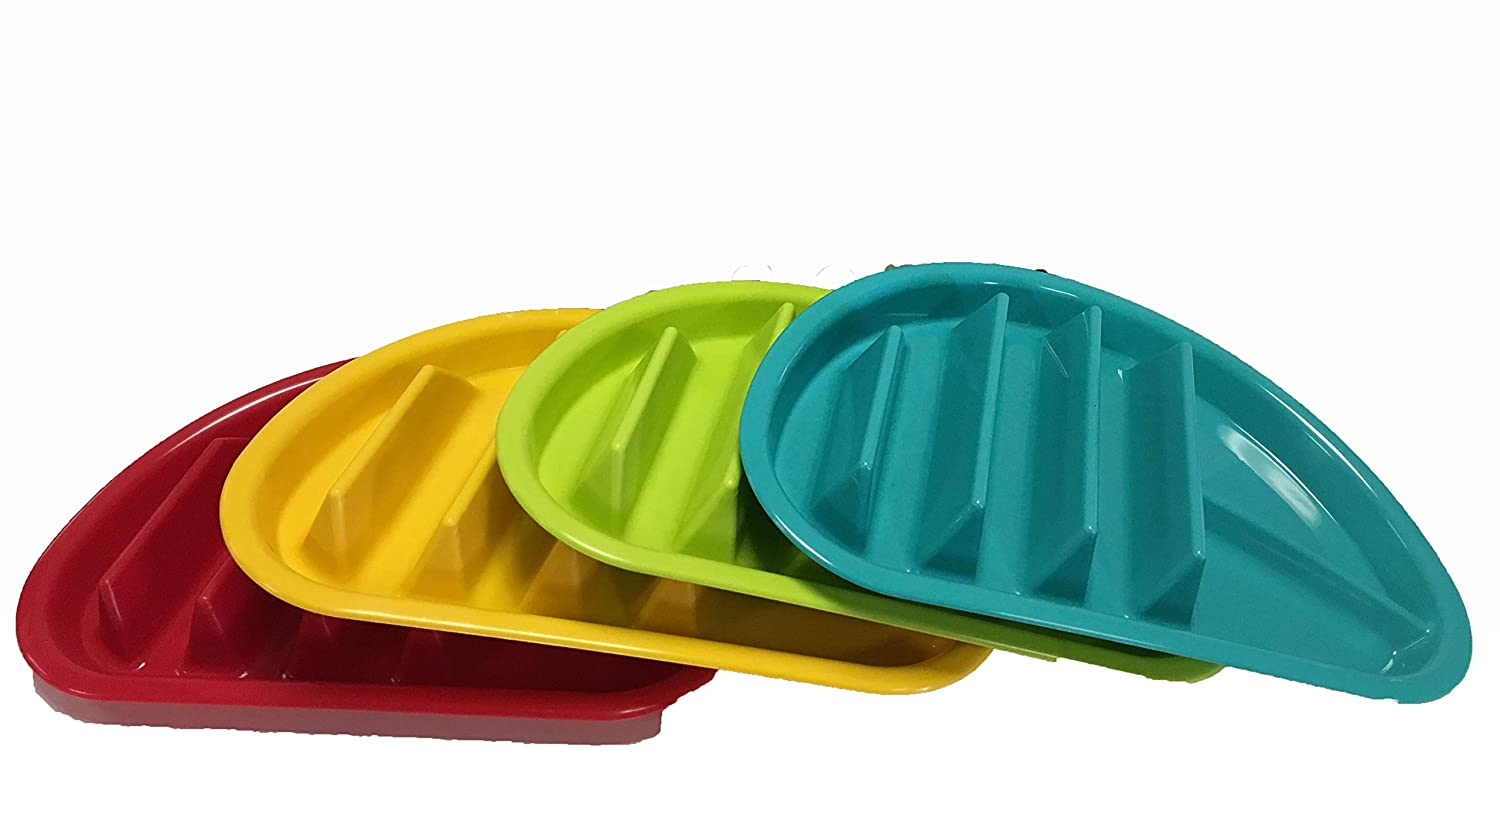 Arrow Home Products 10109 Fiesta Taco Plate 12-Pack Assorted Colors